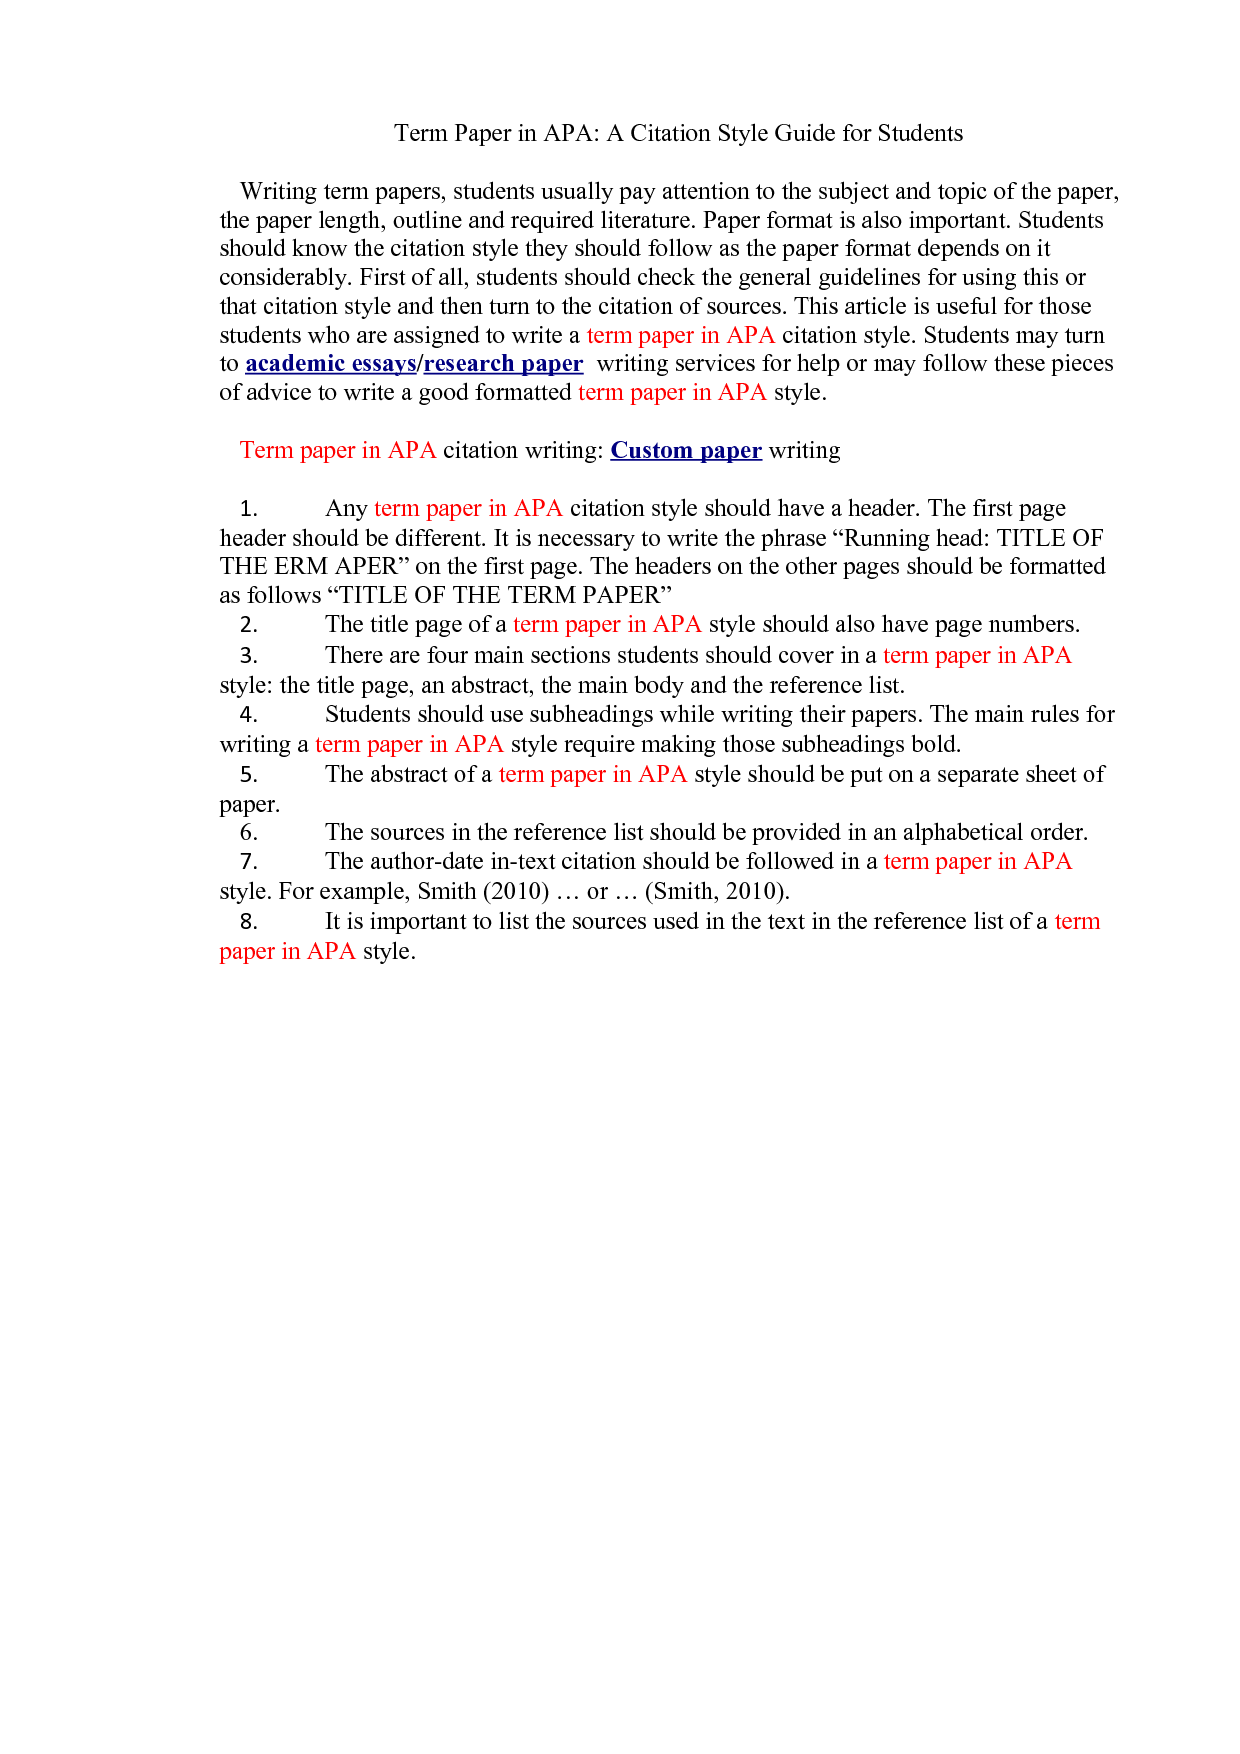 012 Essay Citation Mla Examples L Example How To Quote An Article Impressive In Reference Apa Title Online Full